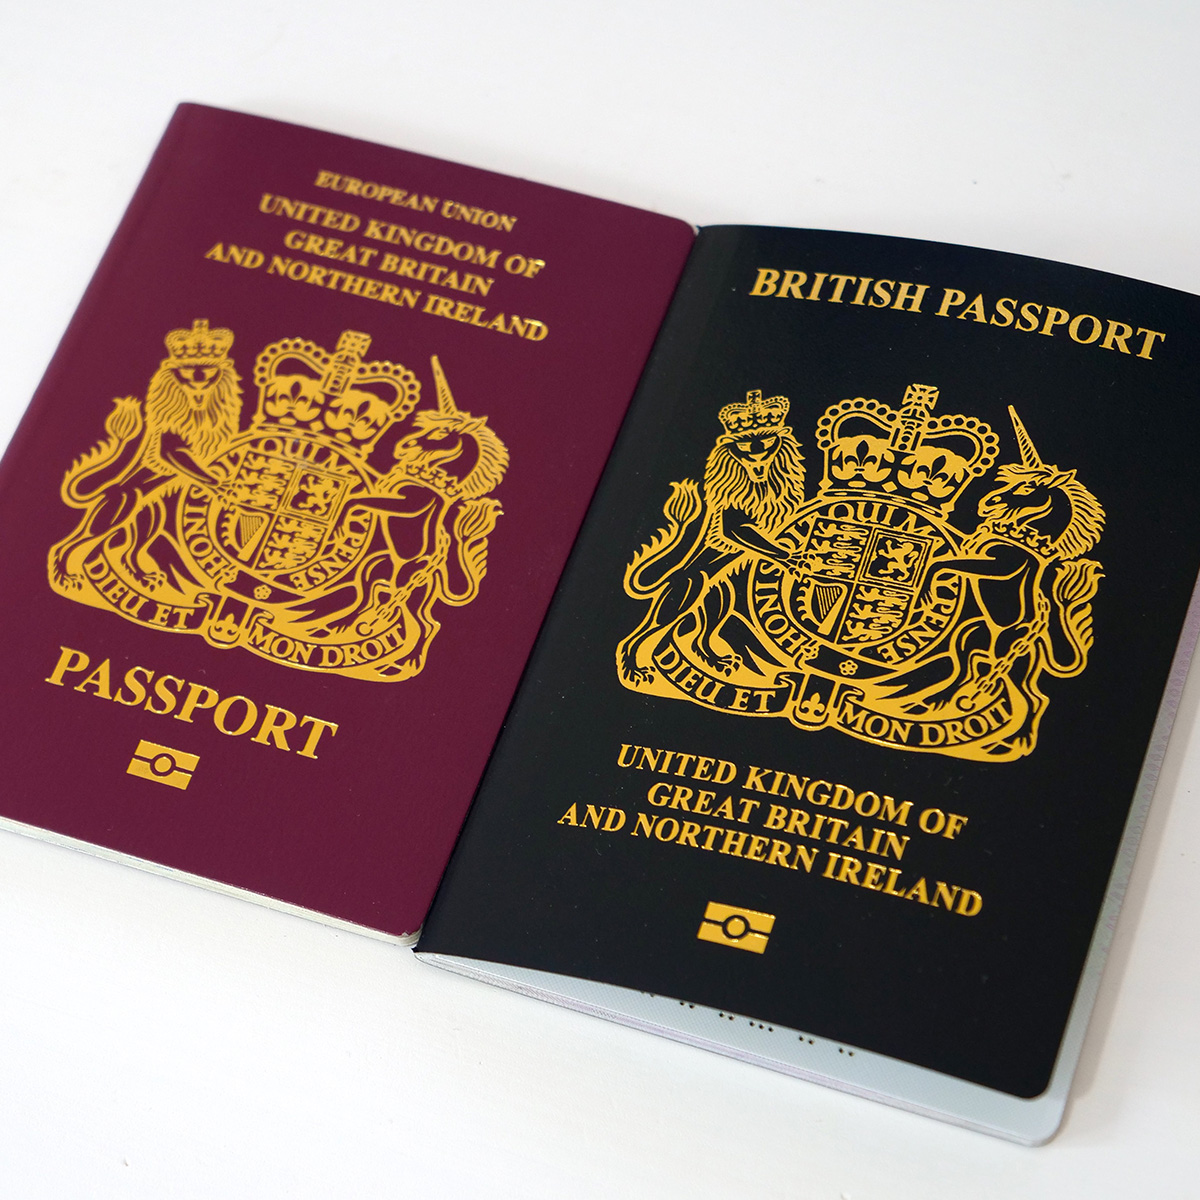 Travel to EU after Brexit - Passports